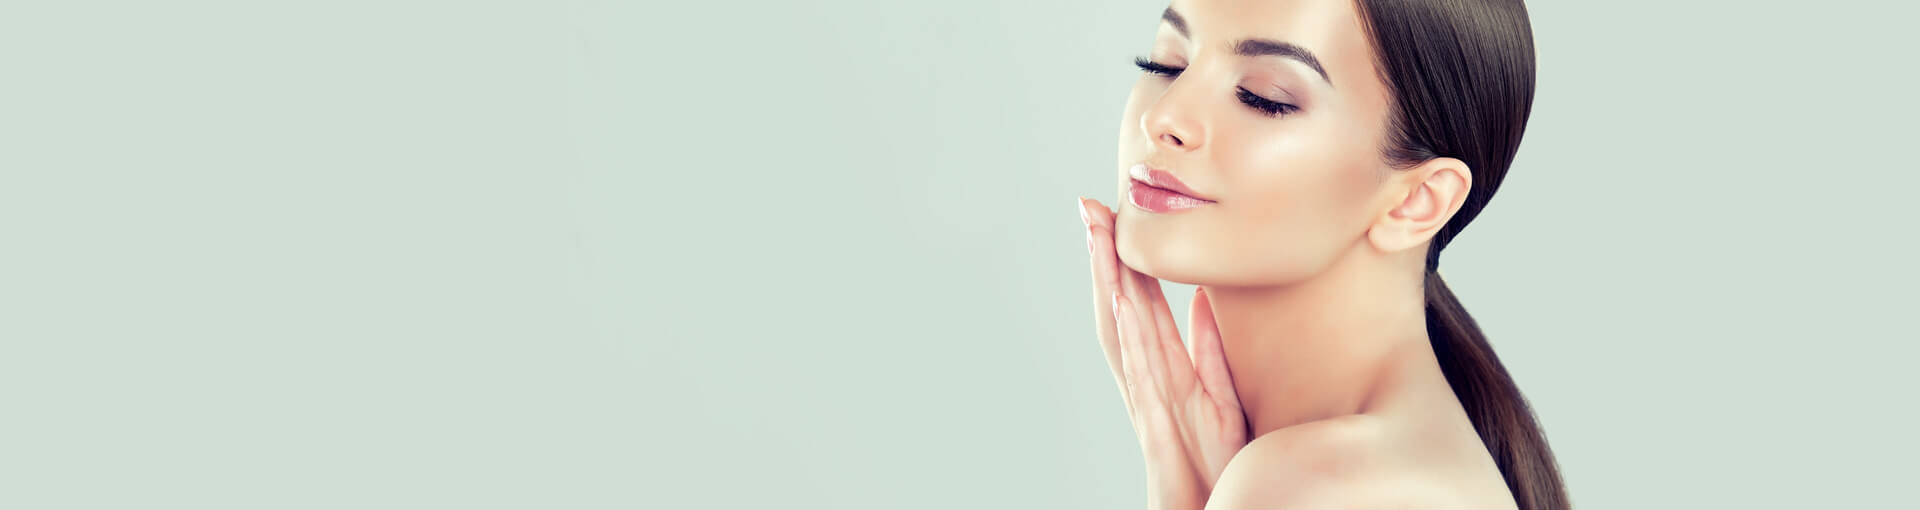 Request an Appointment - drs skin care